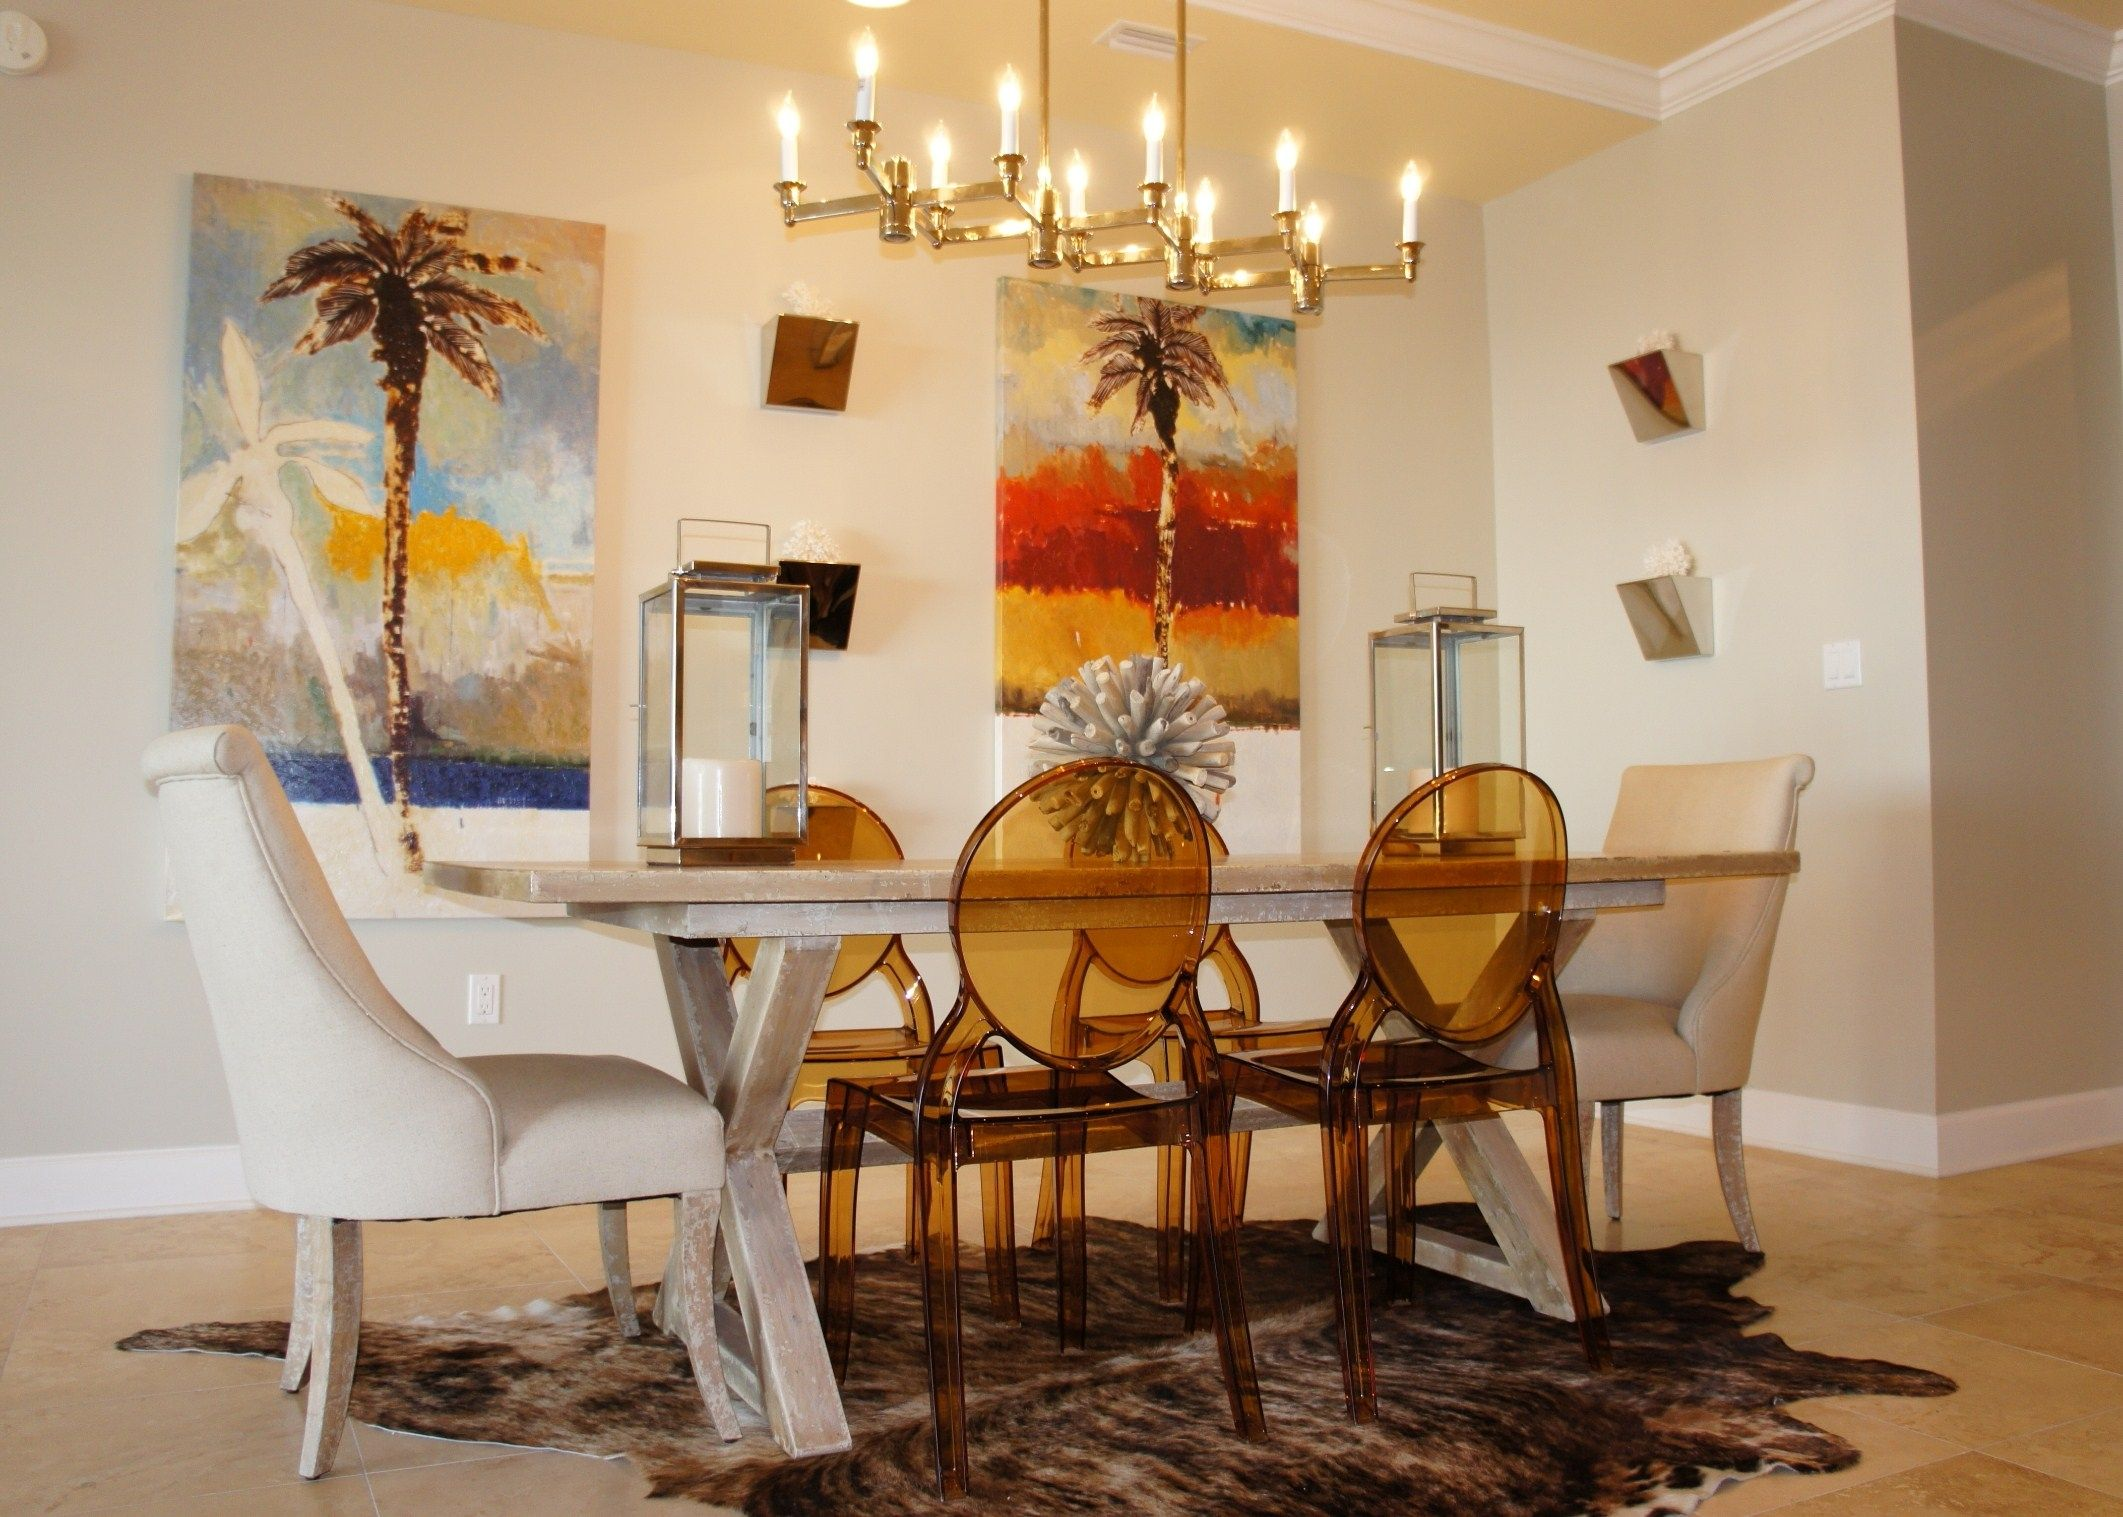 Dining Room Chandelier Painting White Table Candle Holder Sconce Animal Print Carpet Brown Chair Wooden Floor Versus No